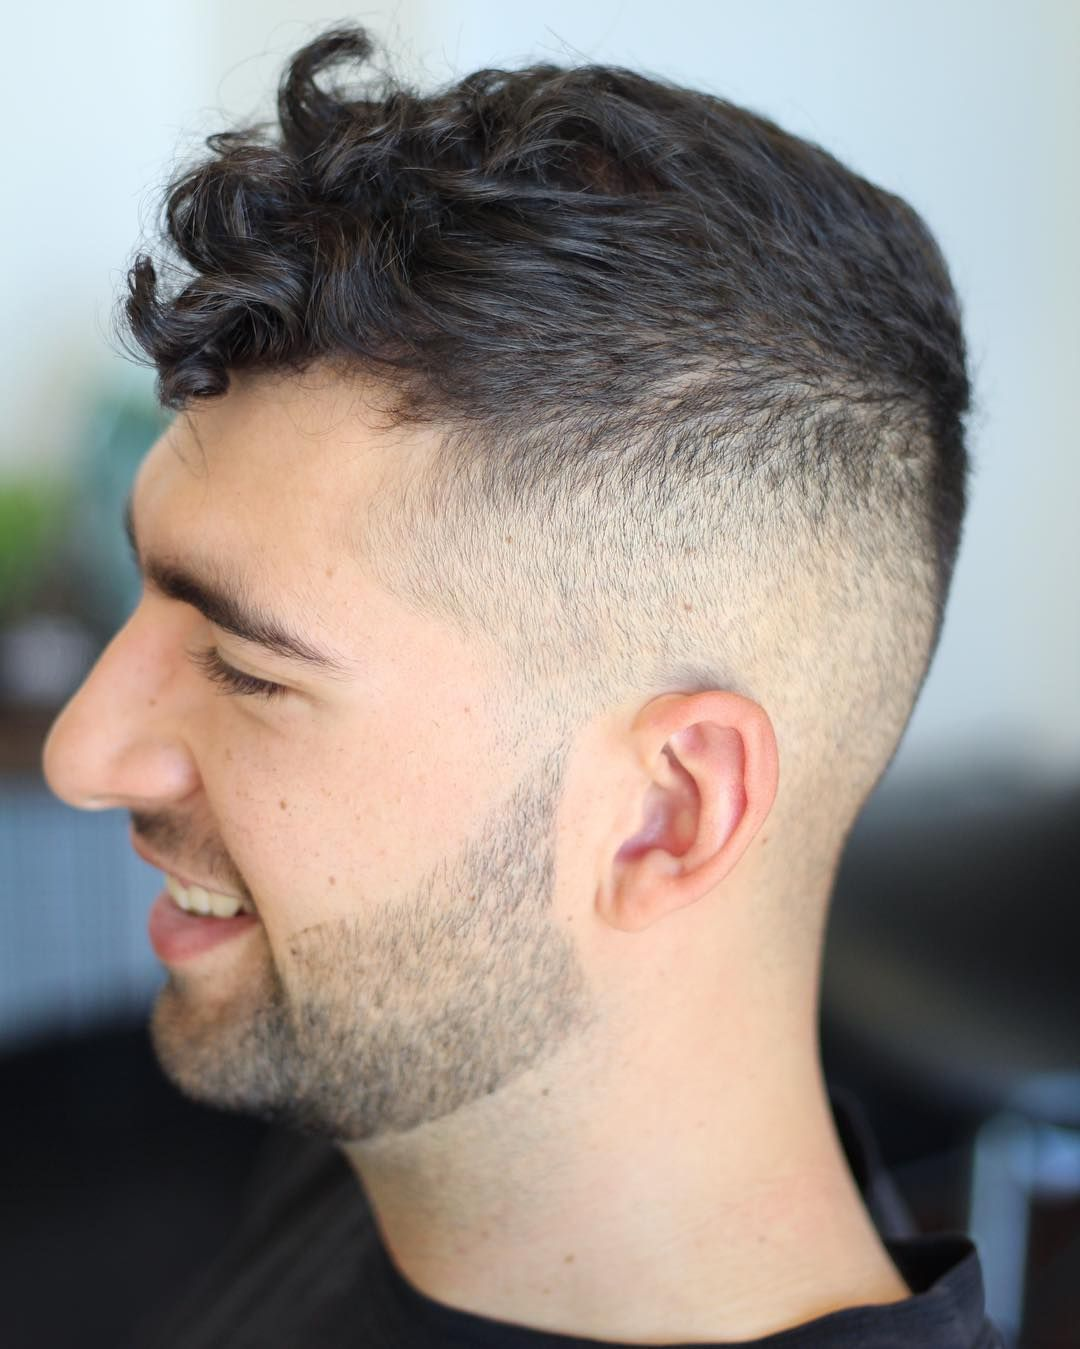 100 New Men S Hairstyles Top Picks Mens Hairstyles Short New Men Hairstyles Best Fade Haircuts